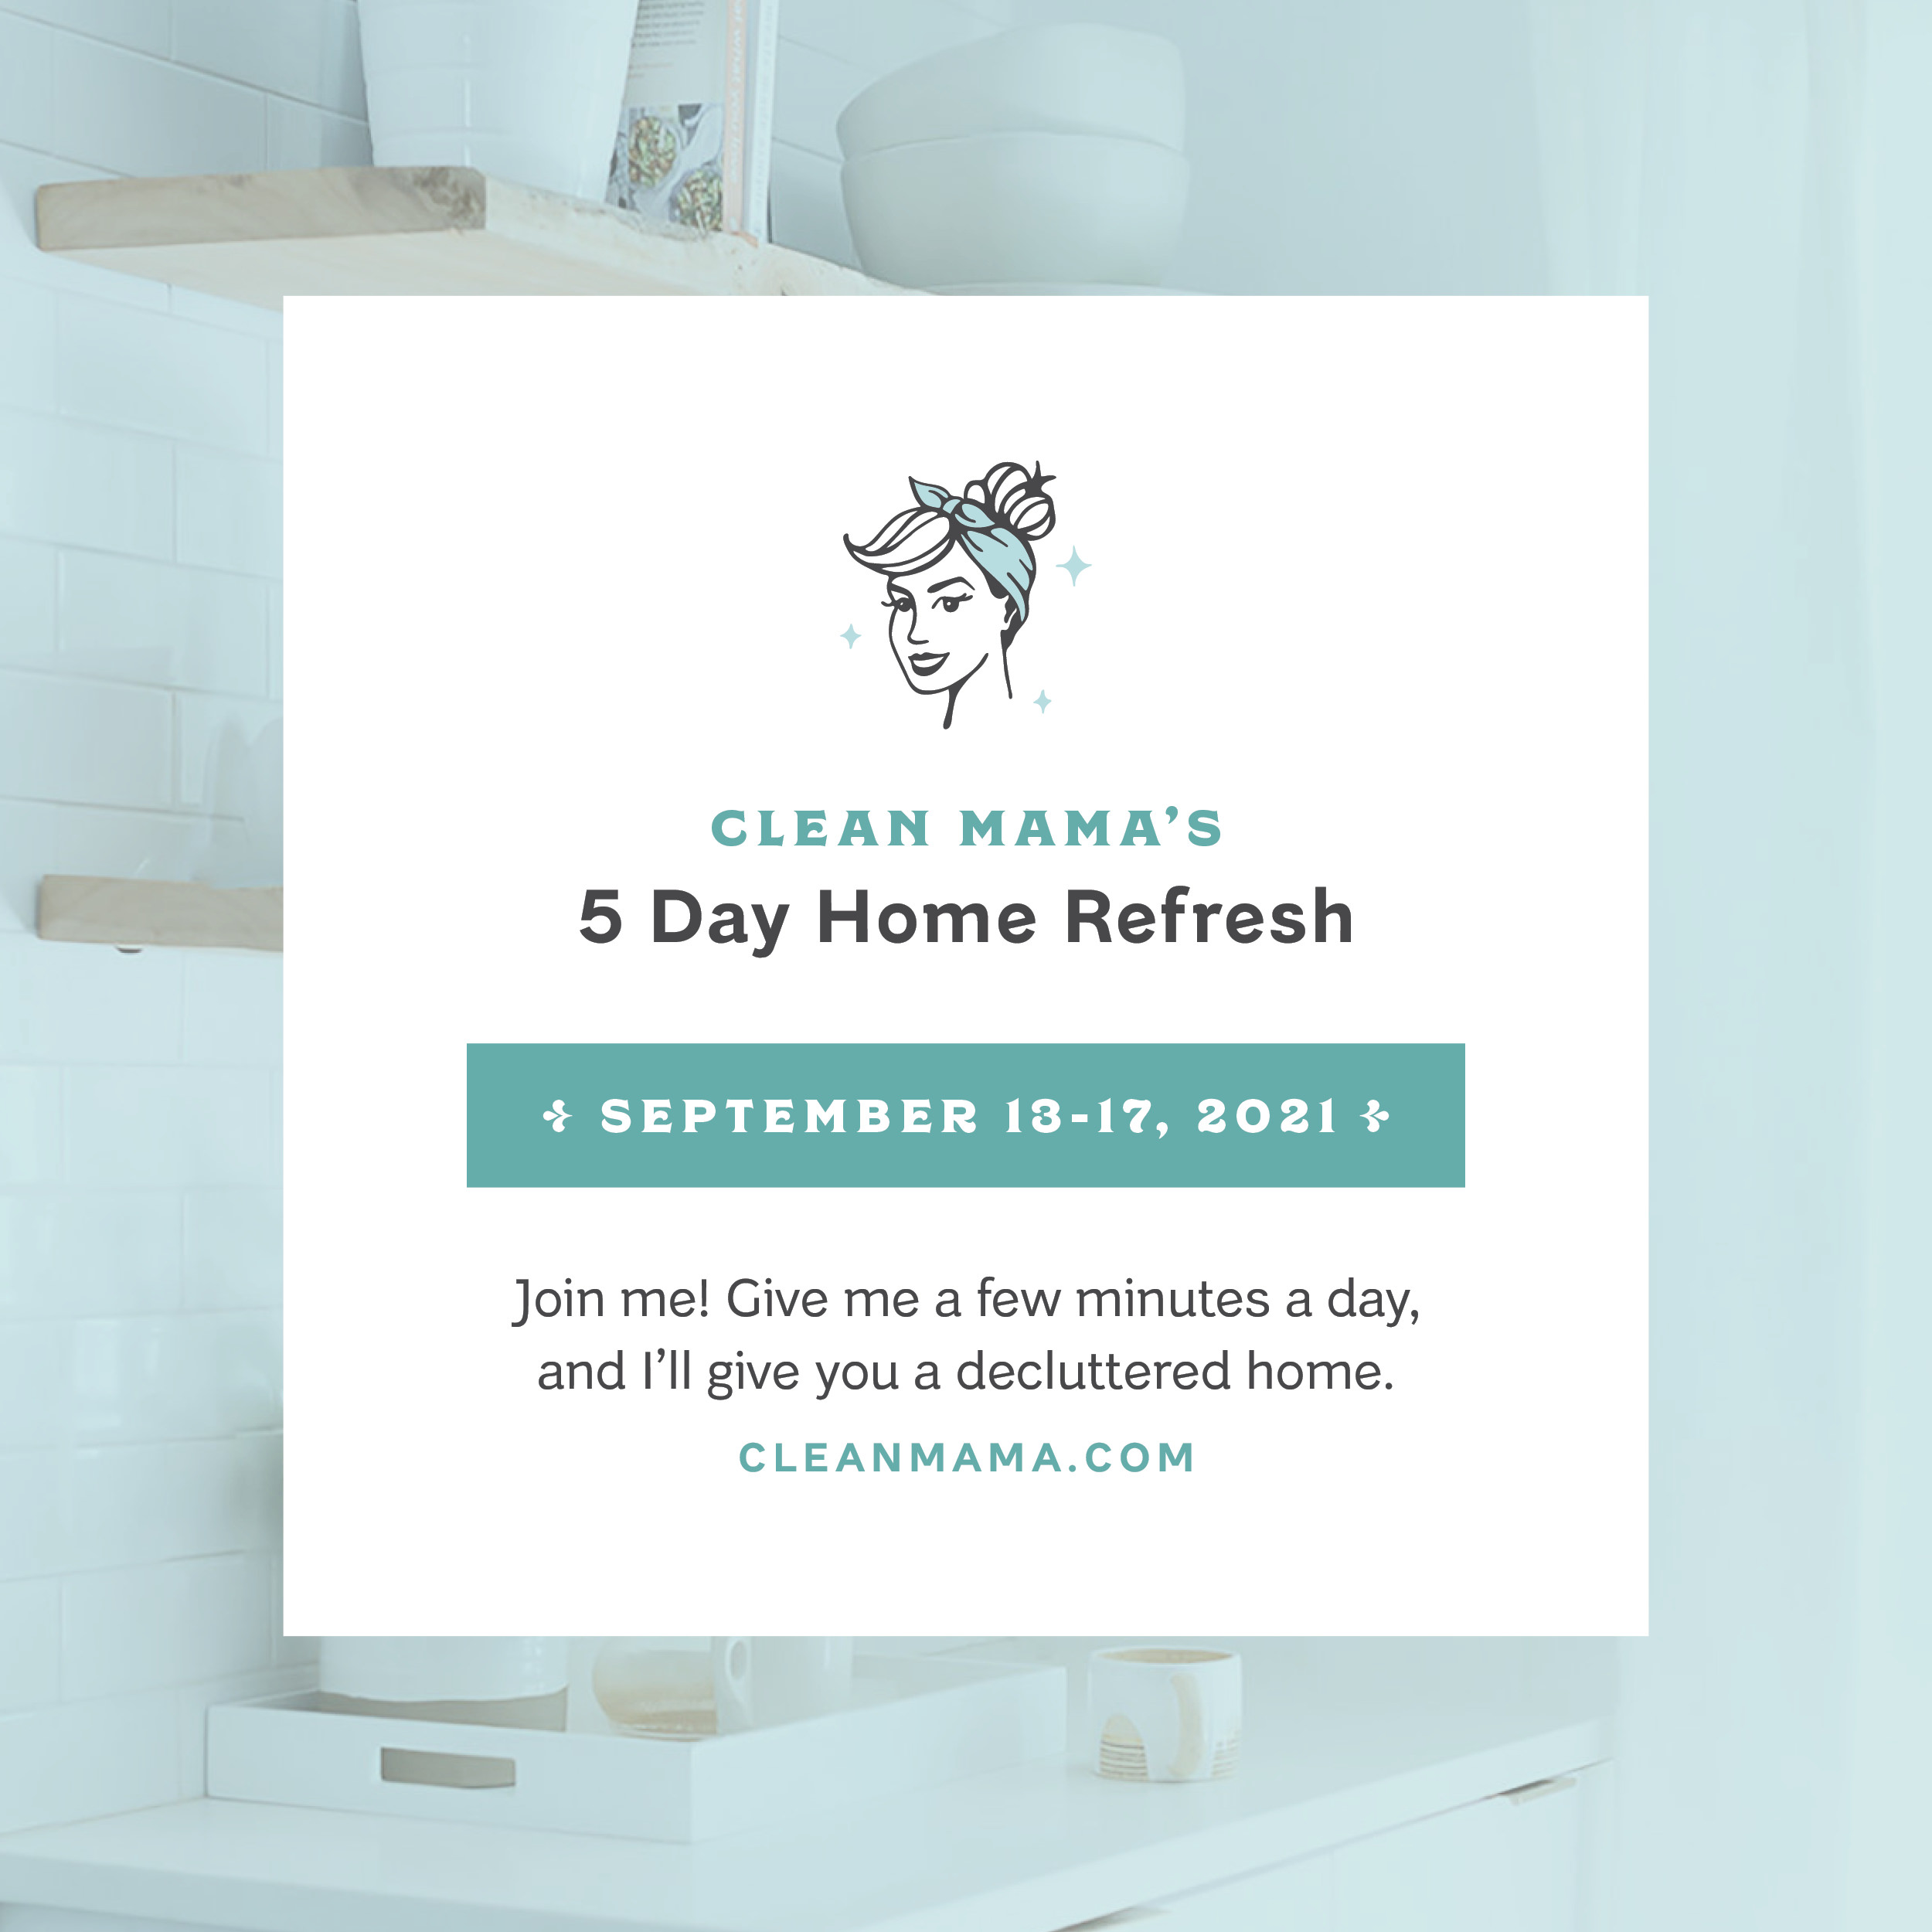 The 5 Day Home Refresh is BACK! – Clean Mama